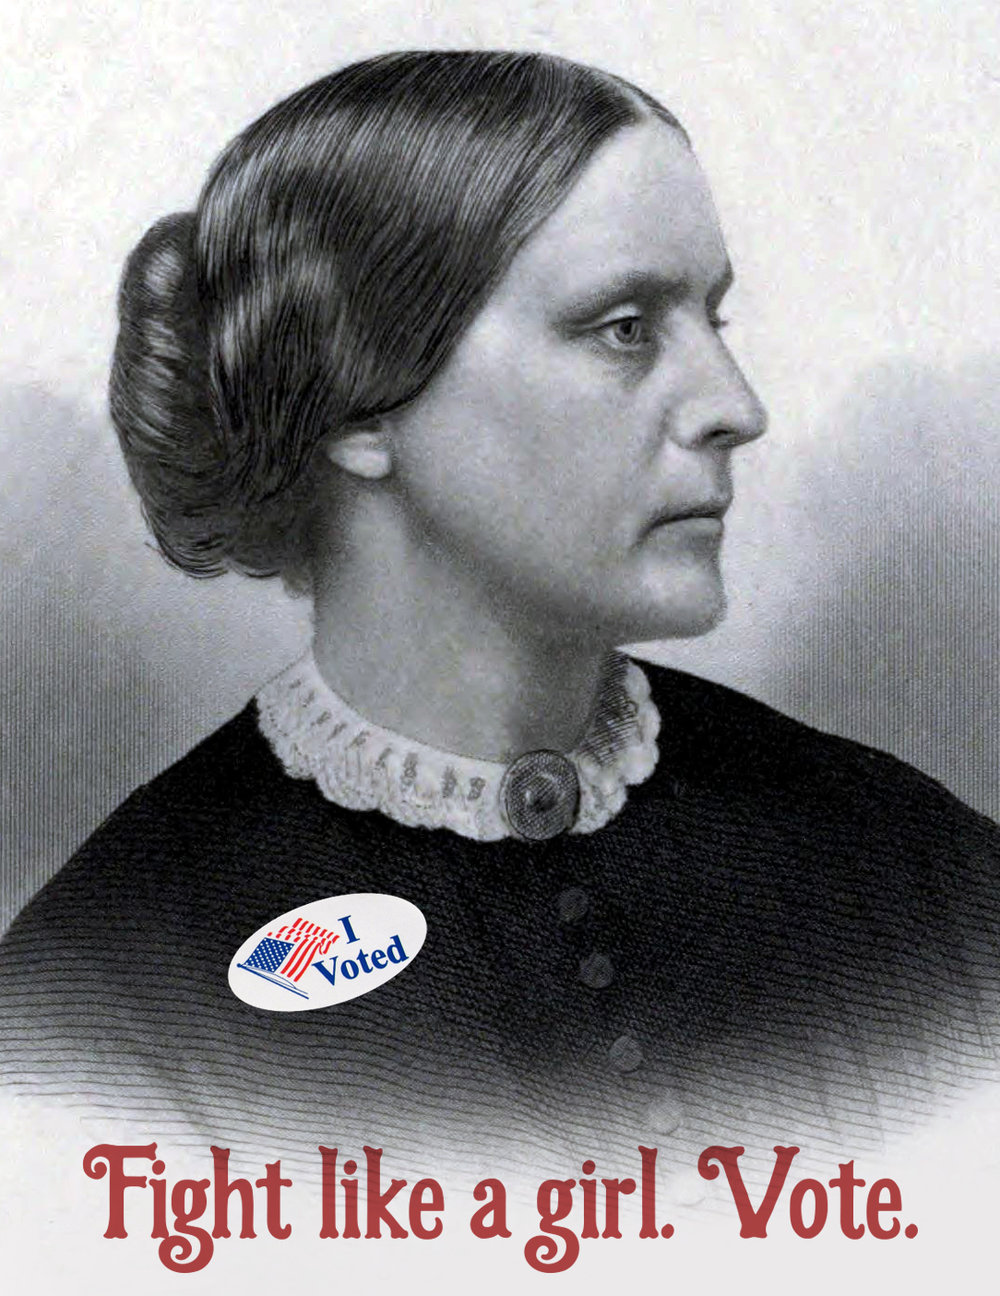 Susan_B_Anthony_persistent3a.jpg